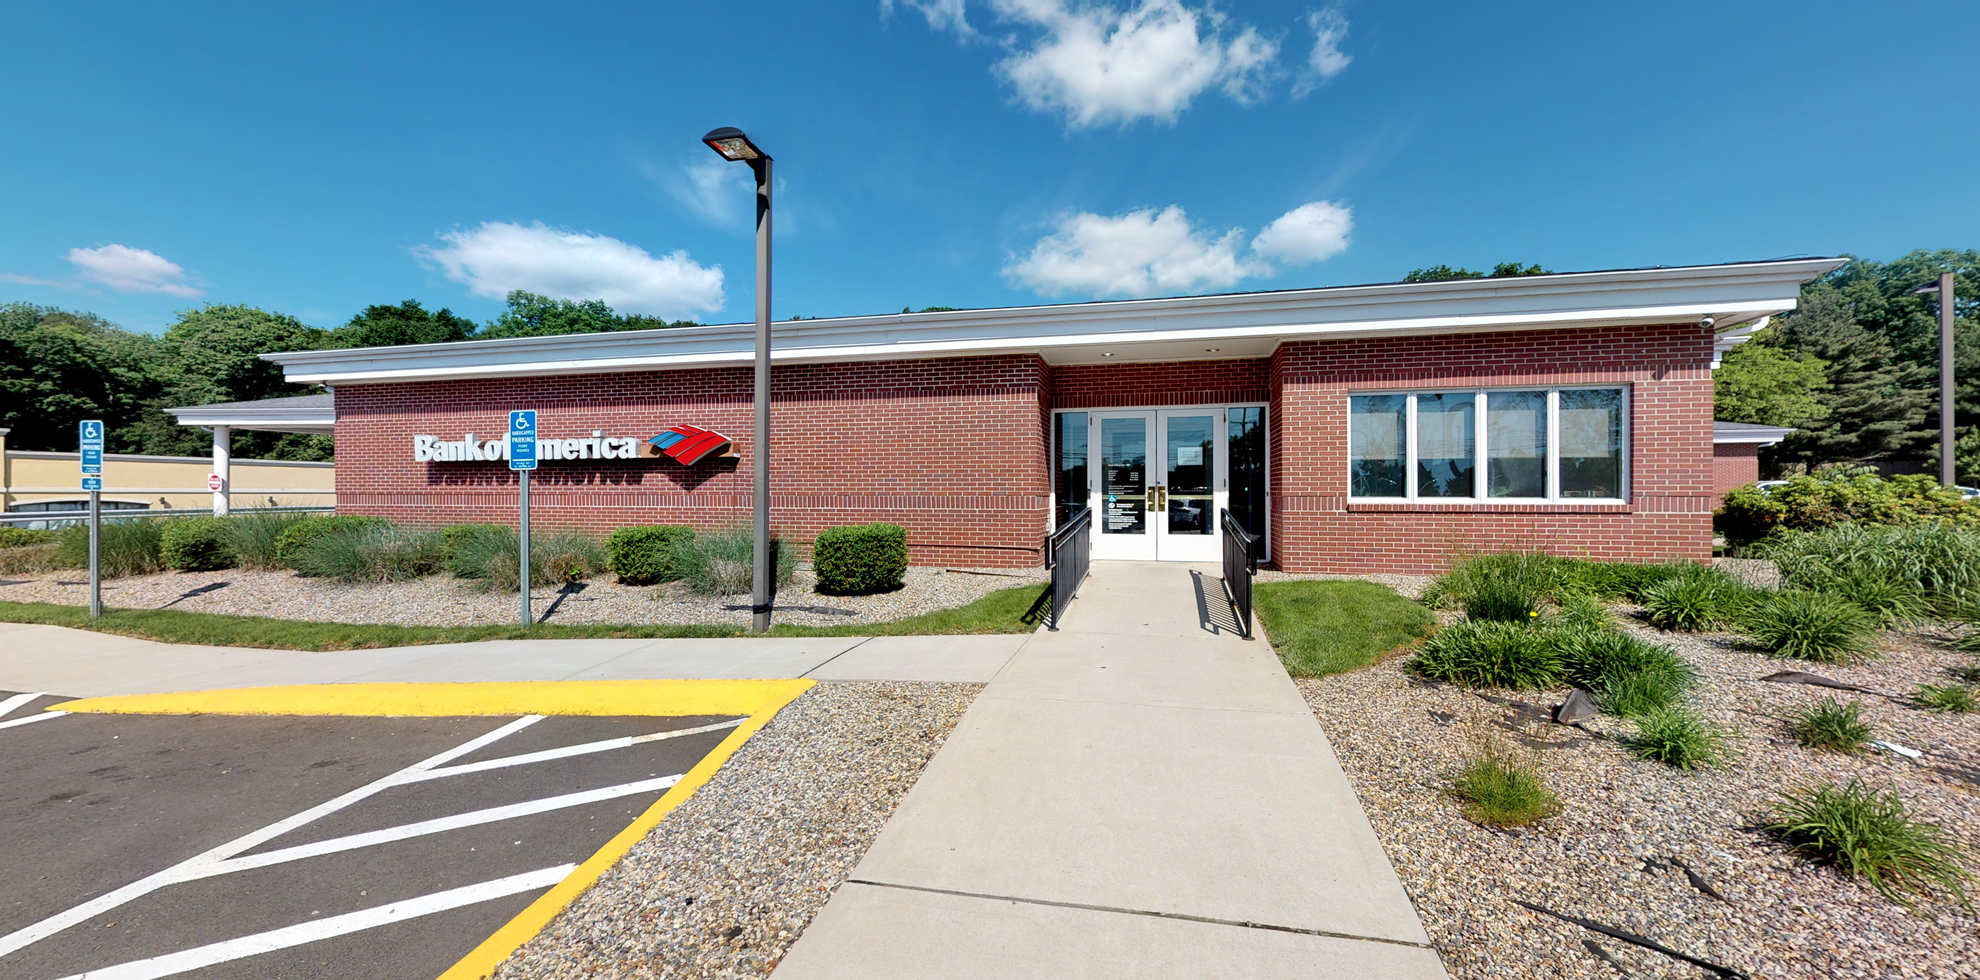 Bank of America financial center with drive-thru ATM   445 Boston Post Rd, Orange, CT 06477